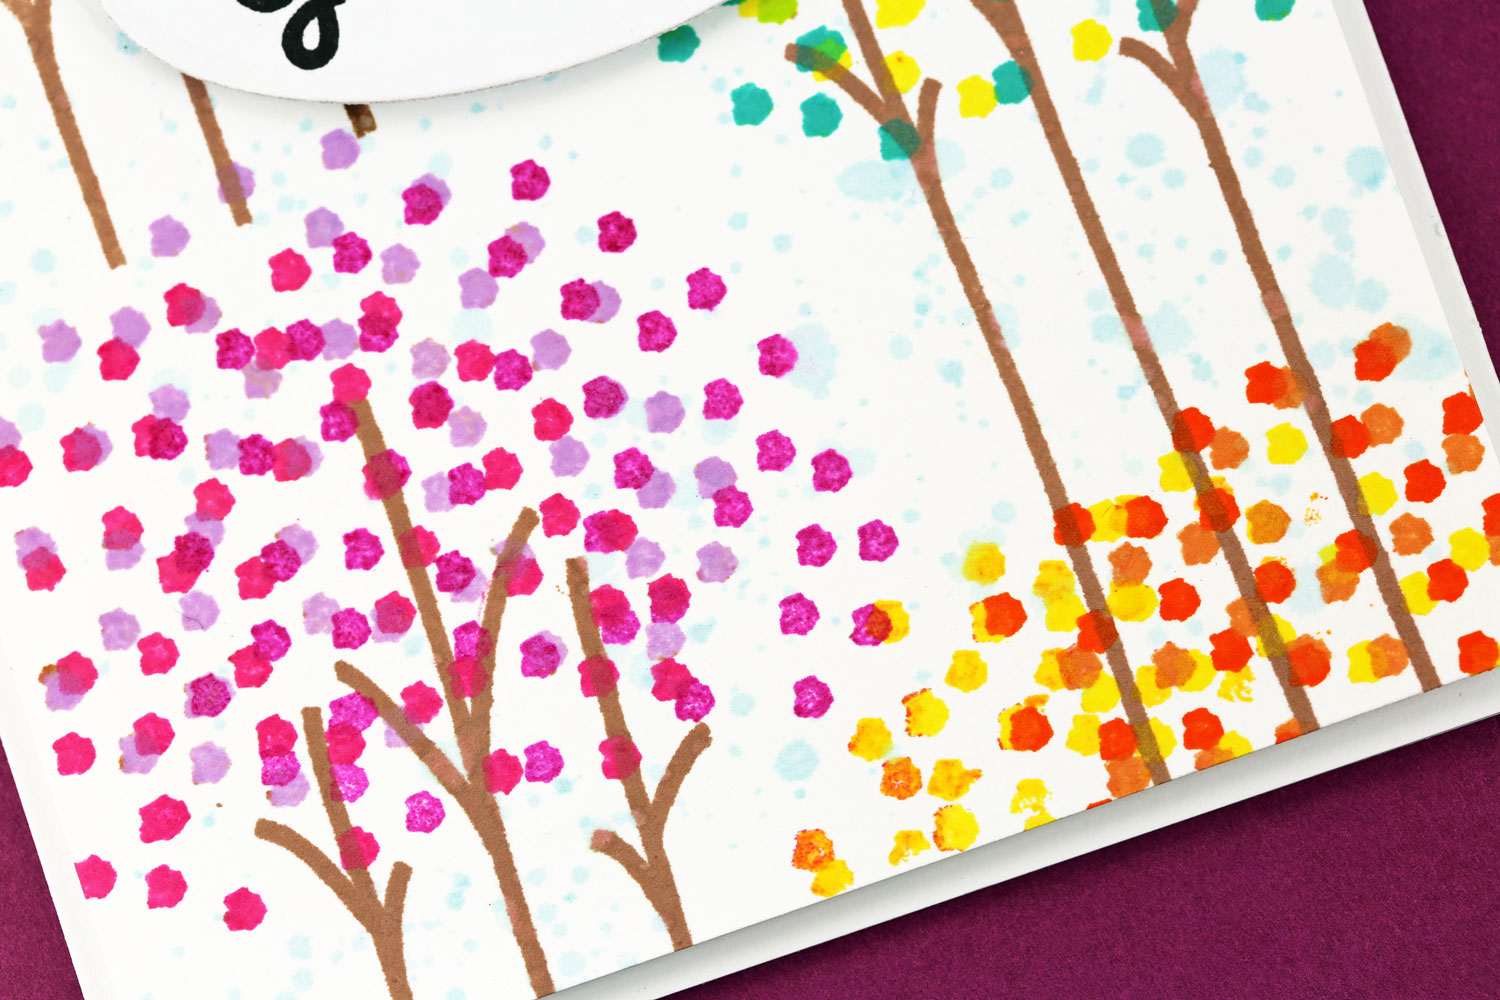 A kept life cas ual fridays thanksgiving greetings i stamped a background of colorful leaves and trees from the cas ual fridays calm and gentle stamp set i tried different ways of stamping the leaves and kristyandbryce Images